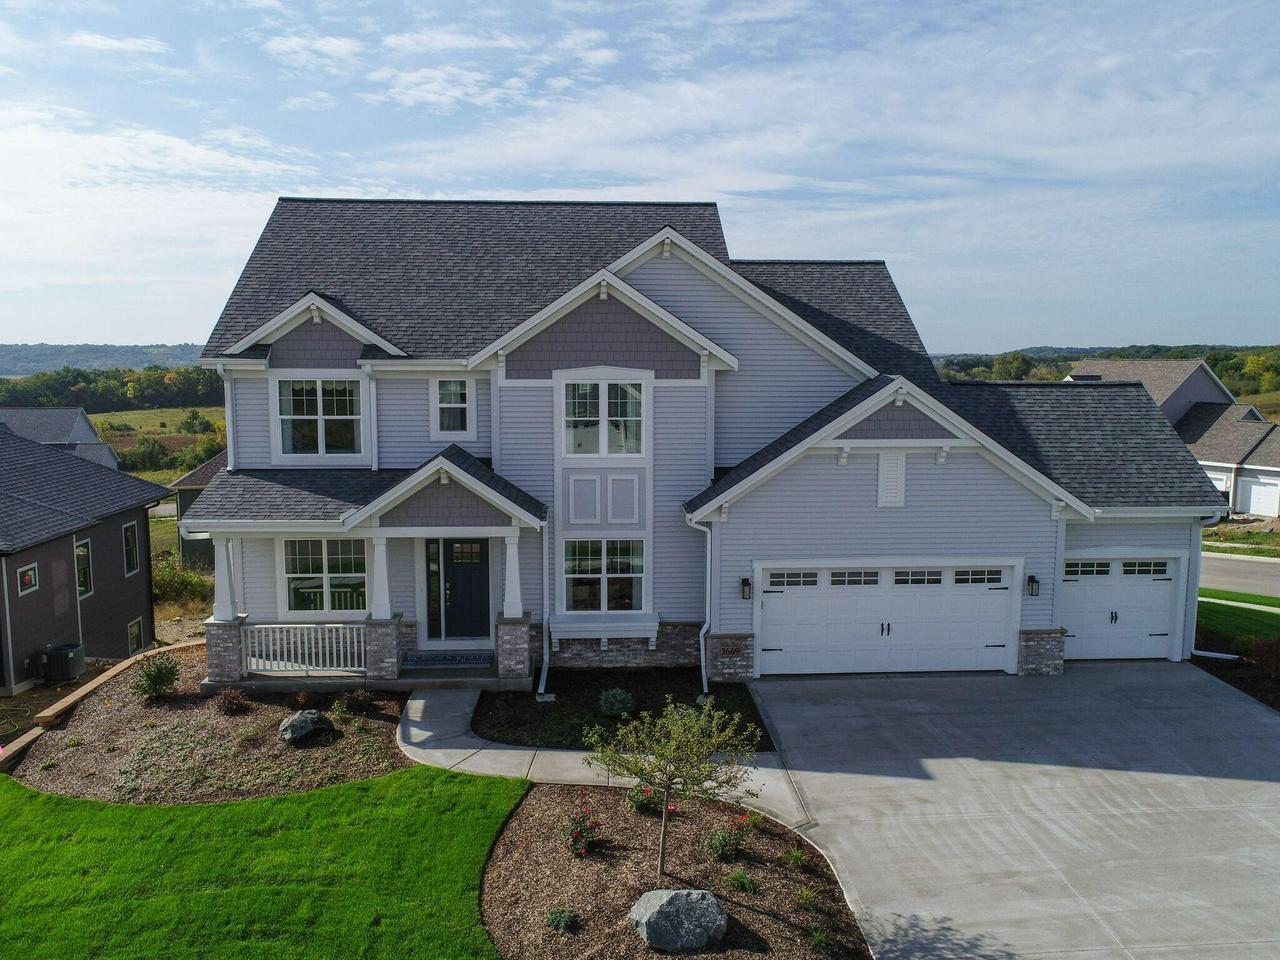 This professionally decorated builder model has one of the best views in Waukesha! This home also features southern exposure, finished basement with walkout and an Azek deck. Designed for functionality & entertaining. The deluxe Kitchen includes GE stainless steel appliances, an oversized island with Viatera quartz countertops & tile backsplash, Maple cabinets, under cabinet LED lighting.  Other finishes include Gas FP w/ tile surround w/ returns & taller mantel, deluxe Master Bathroom with walk-in tiled shower w/corner seat, swing door & rainshower head, his & hers vanities w/granite countertops. This home is move-in ready with custom painting, windows treatments, irrigation & security system and much more!